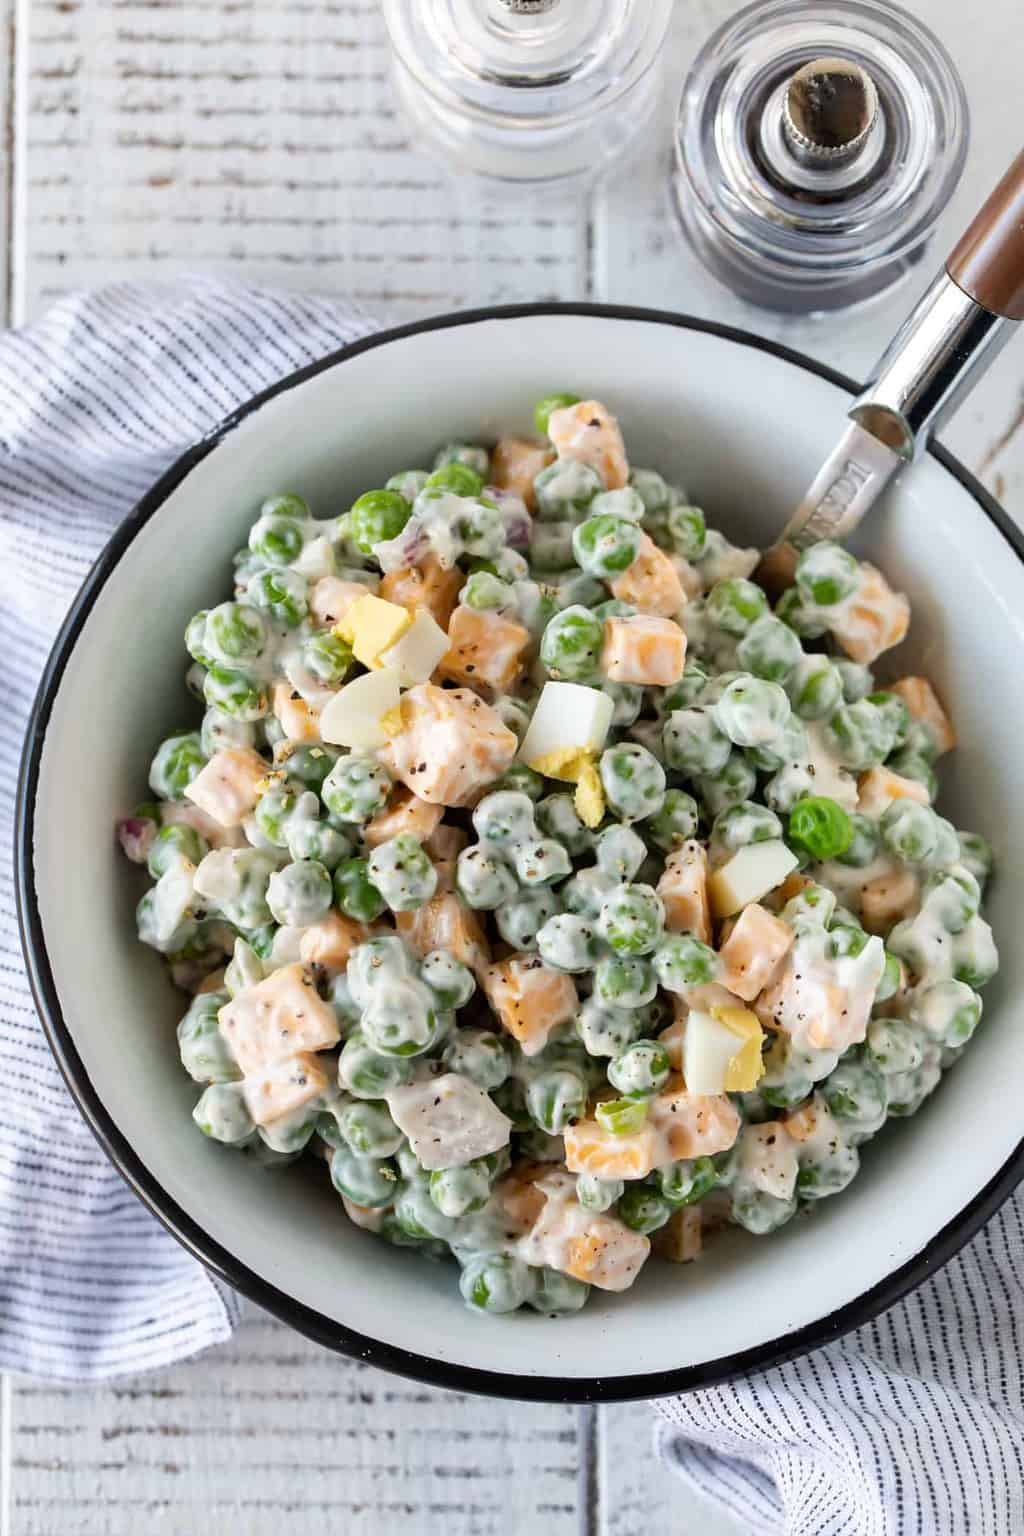 Easy Pea and Cheese Salad in a white bowl with a black rim. Garnished with fresh pepper and has a spoon for serving.